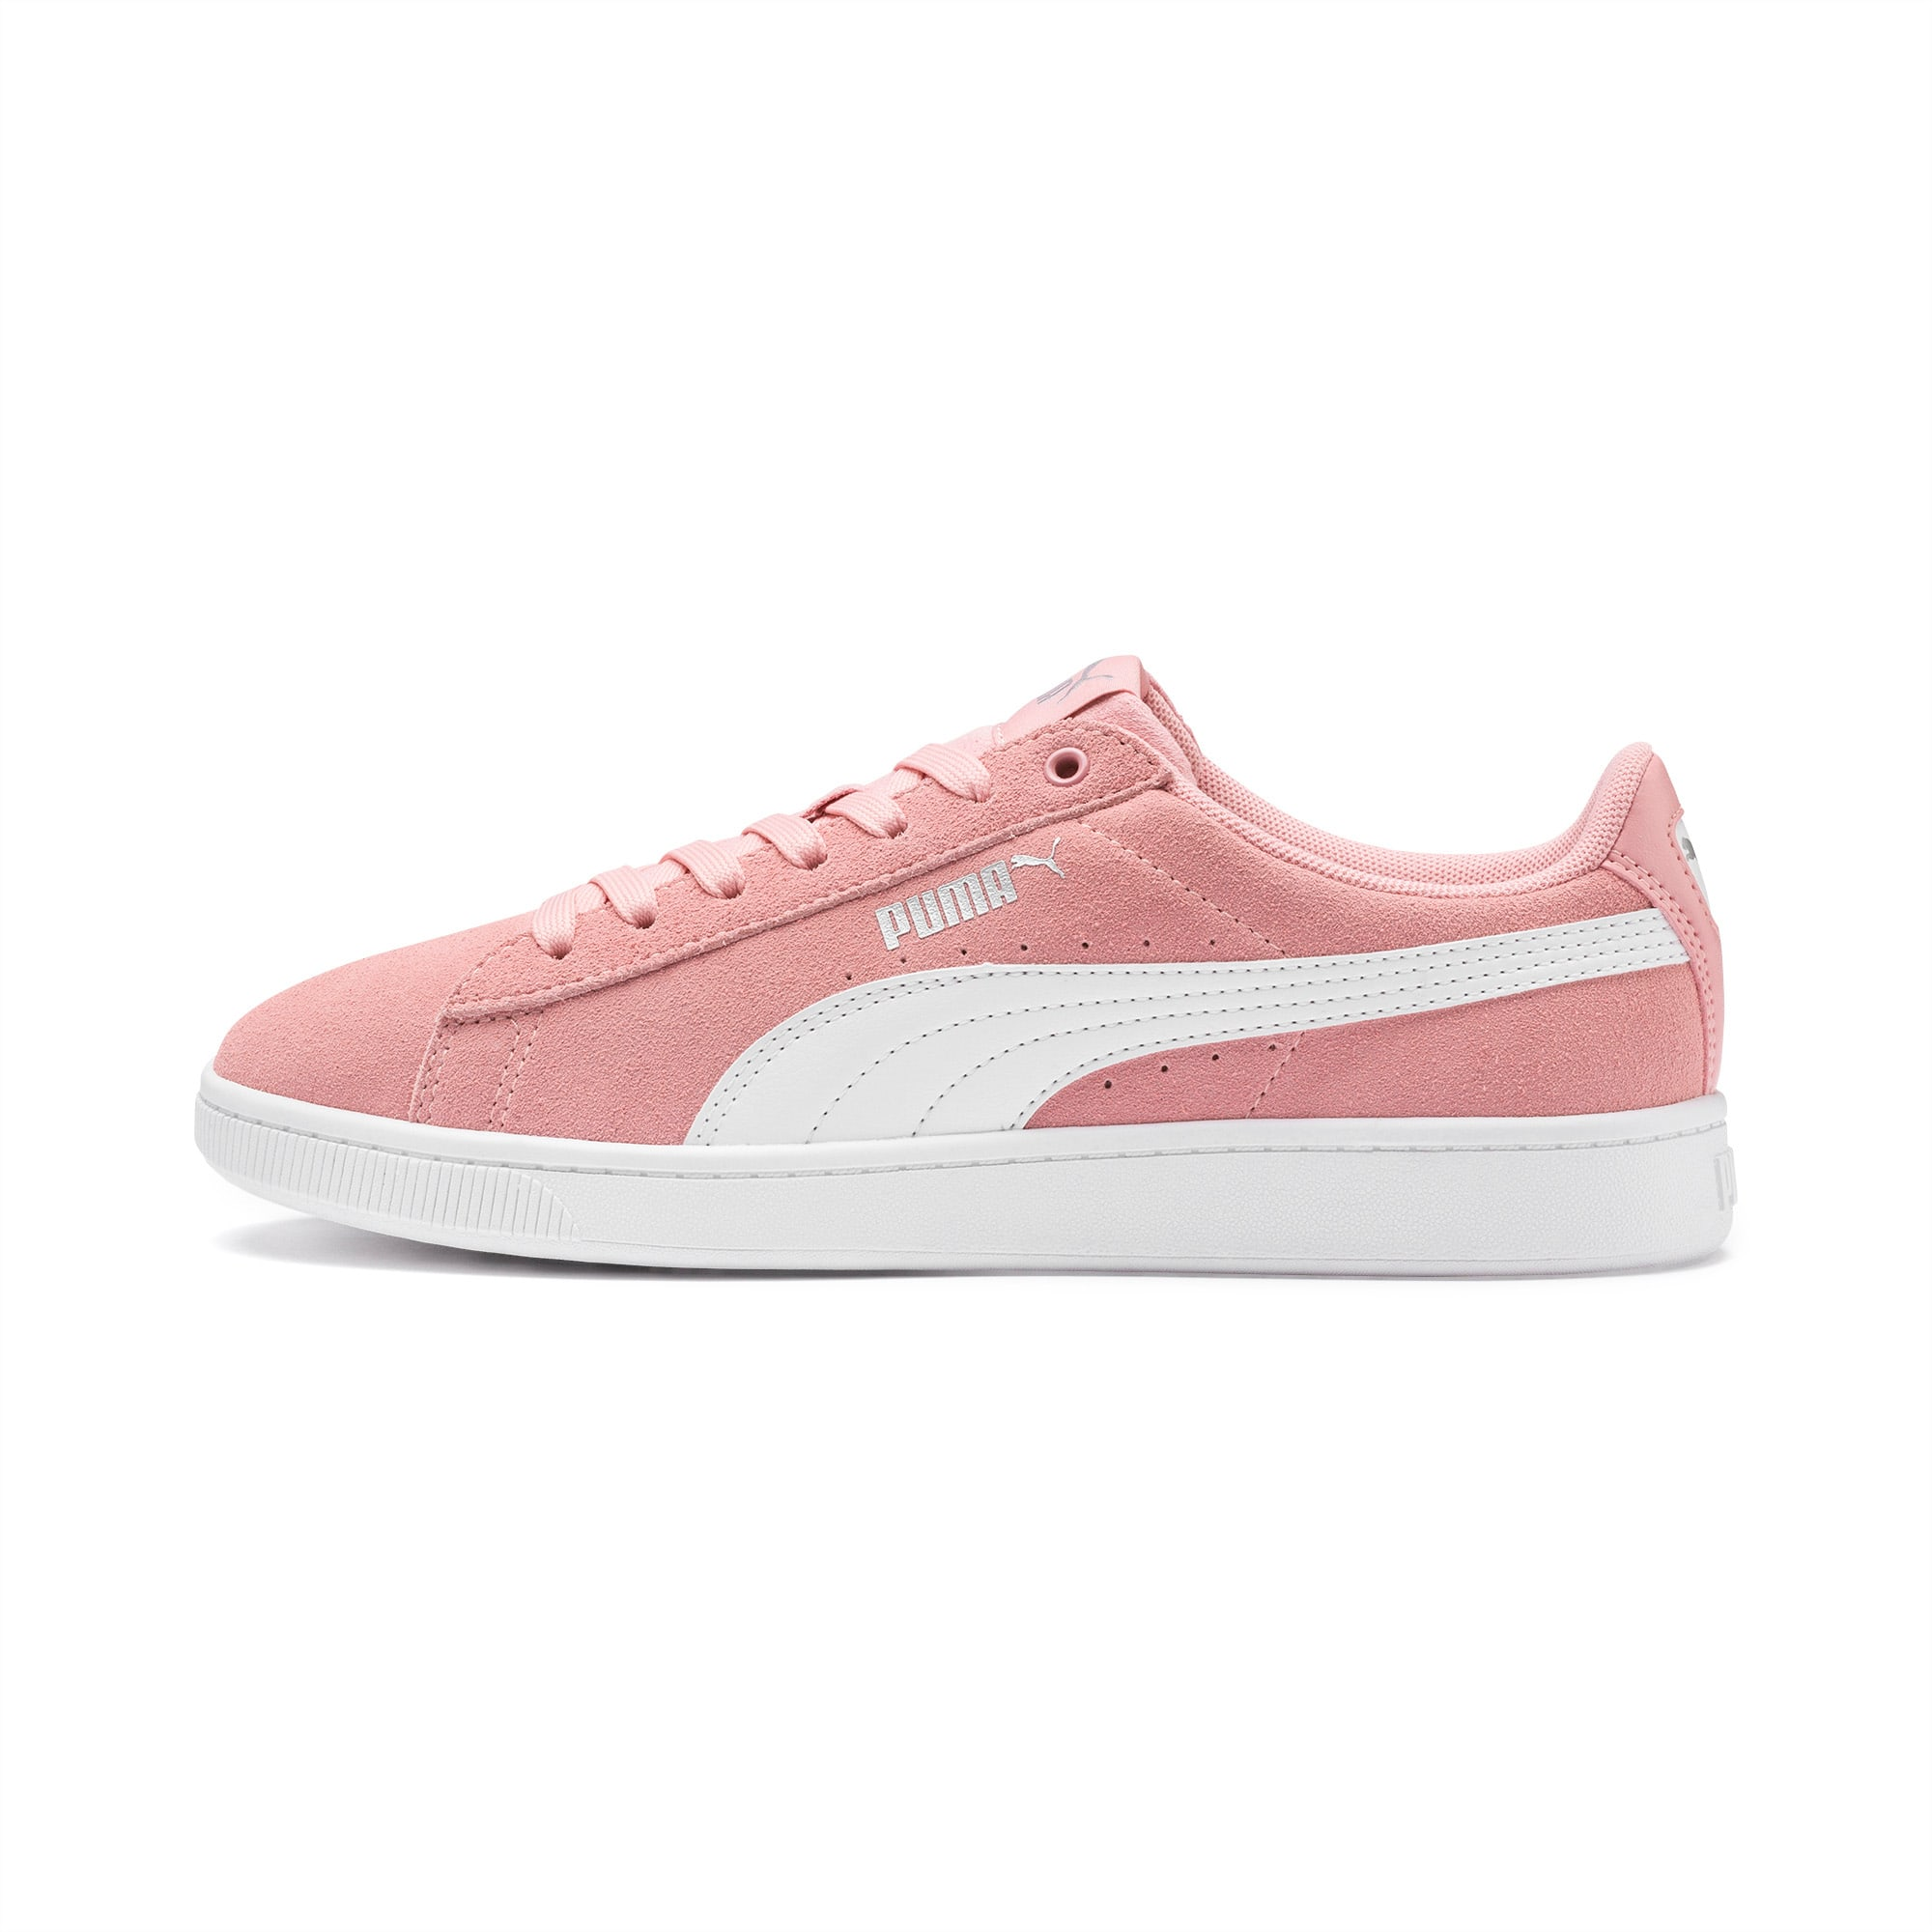 Puma Sneakers Outlet Online Mens Puma Vikky Softfoam Rose